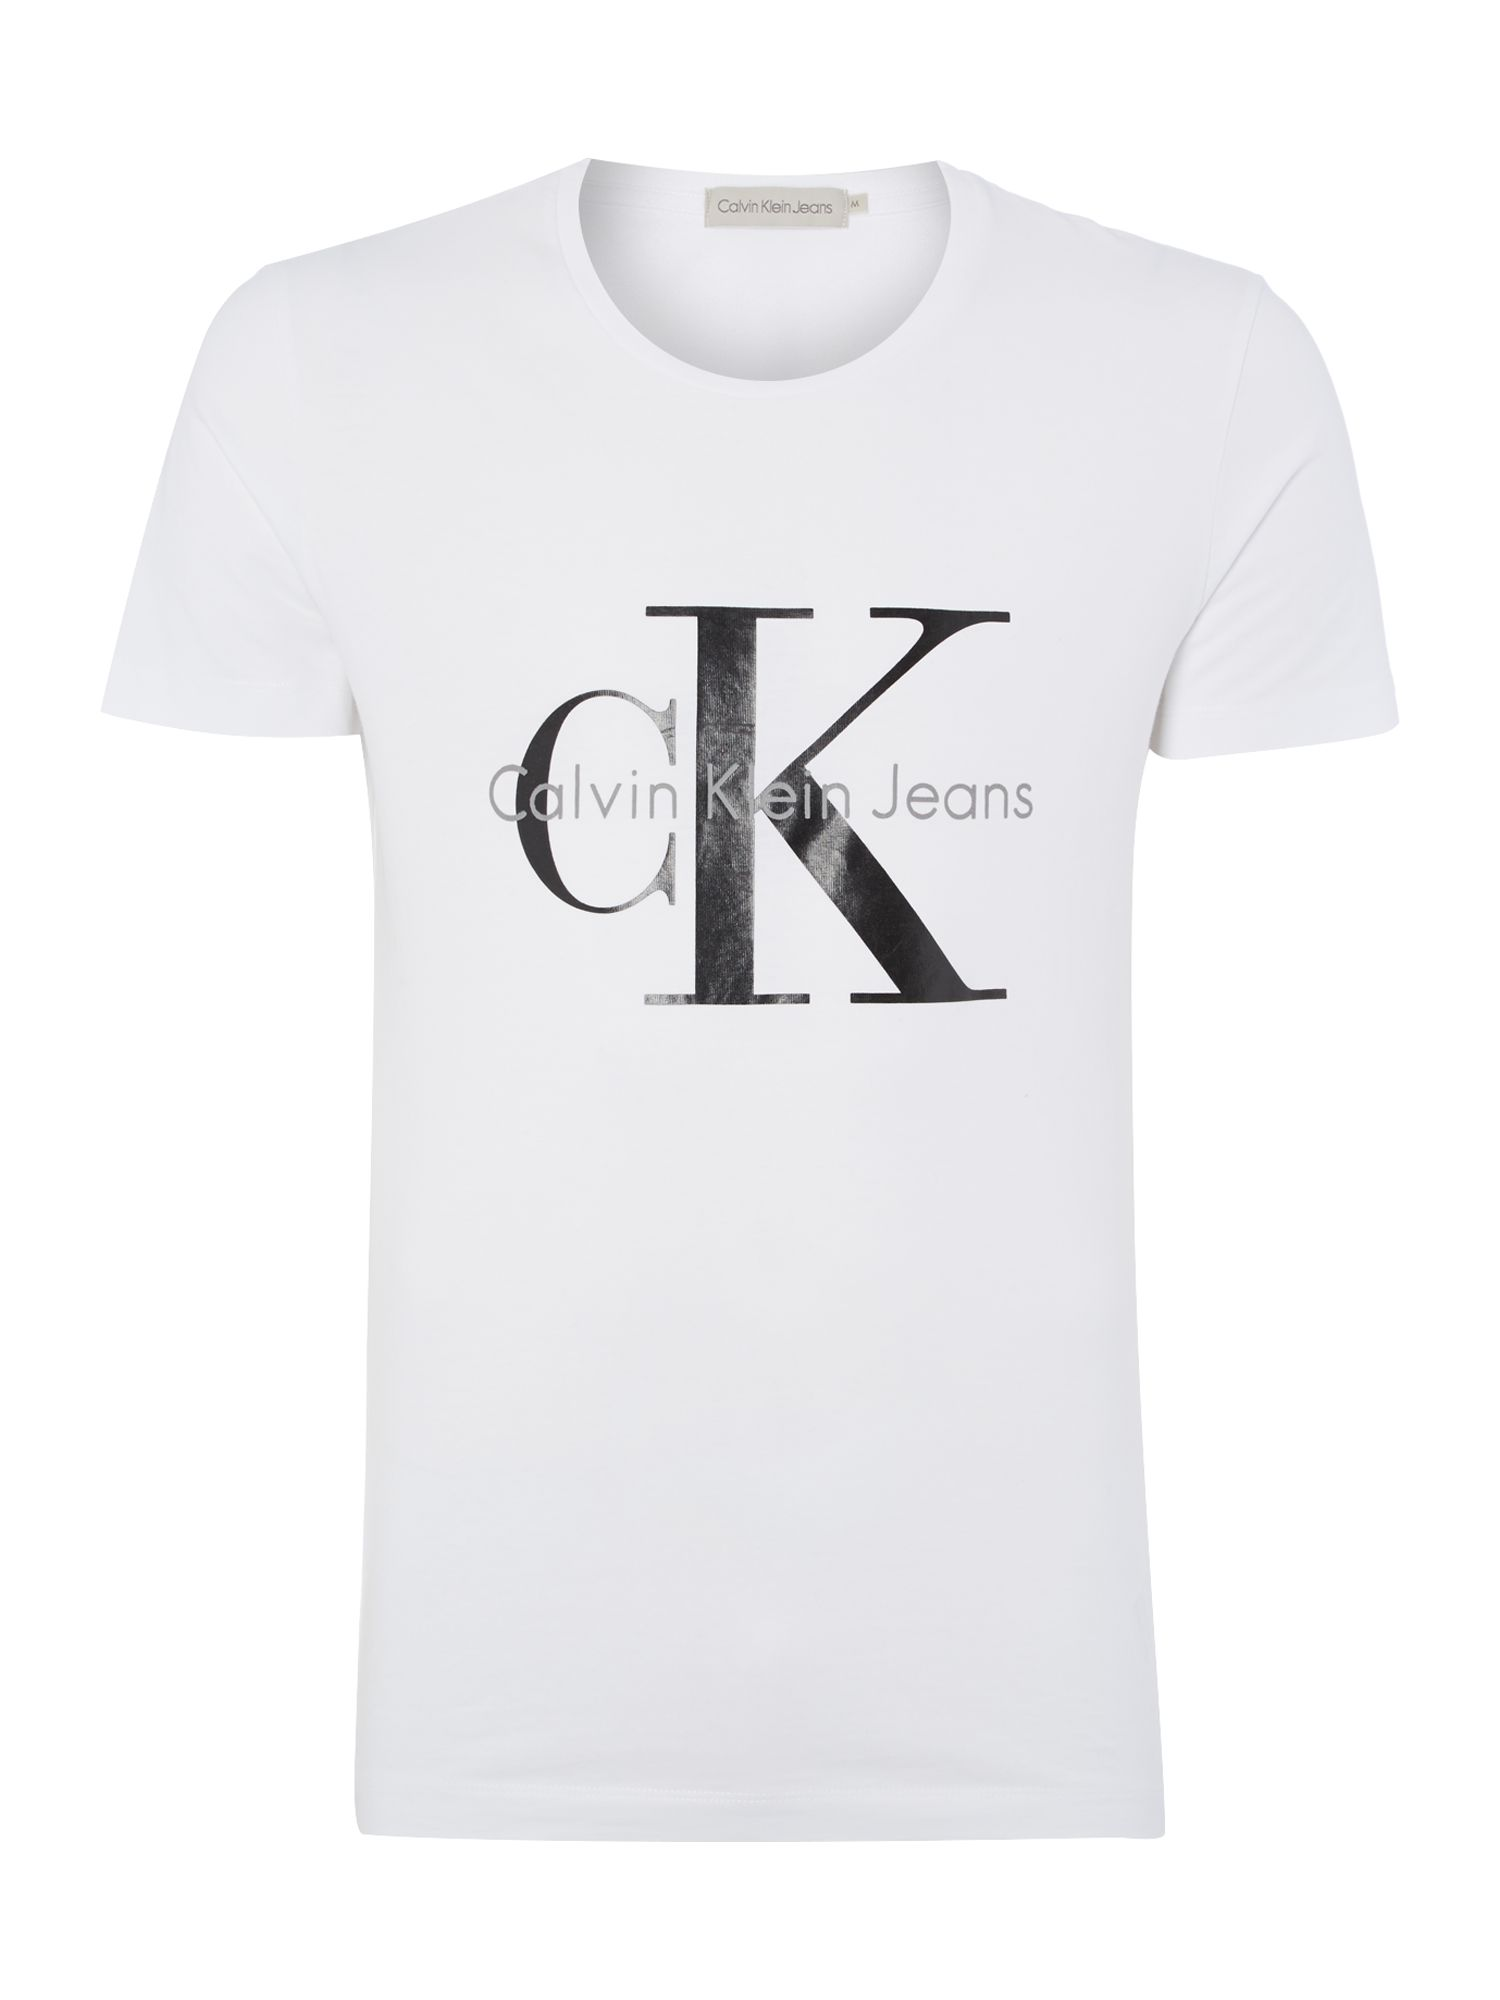 Men's Calvin Klein TEE T-Shirt, White